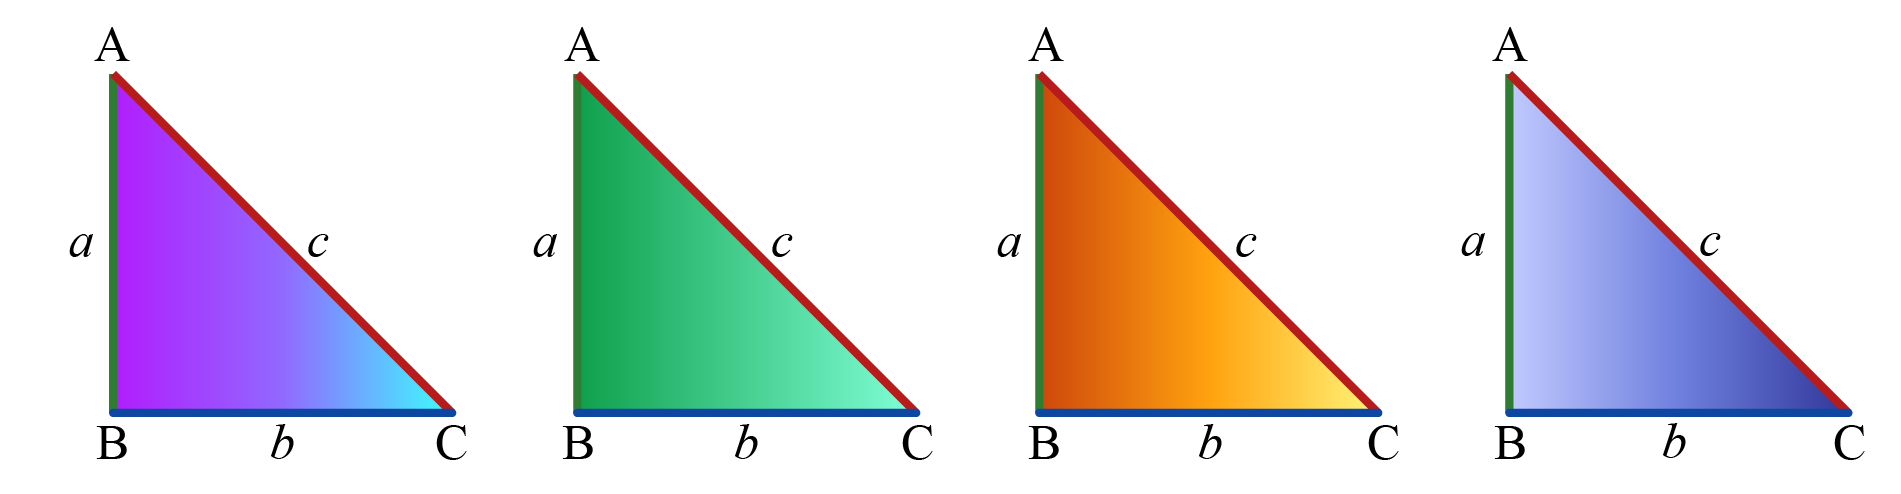 4 congruent triangles